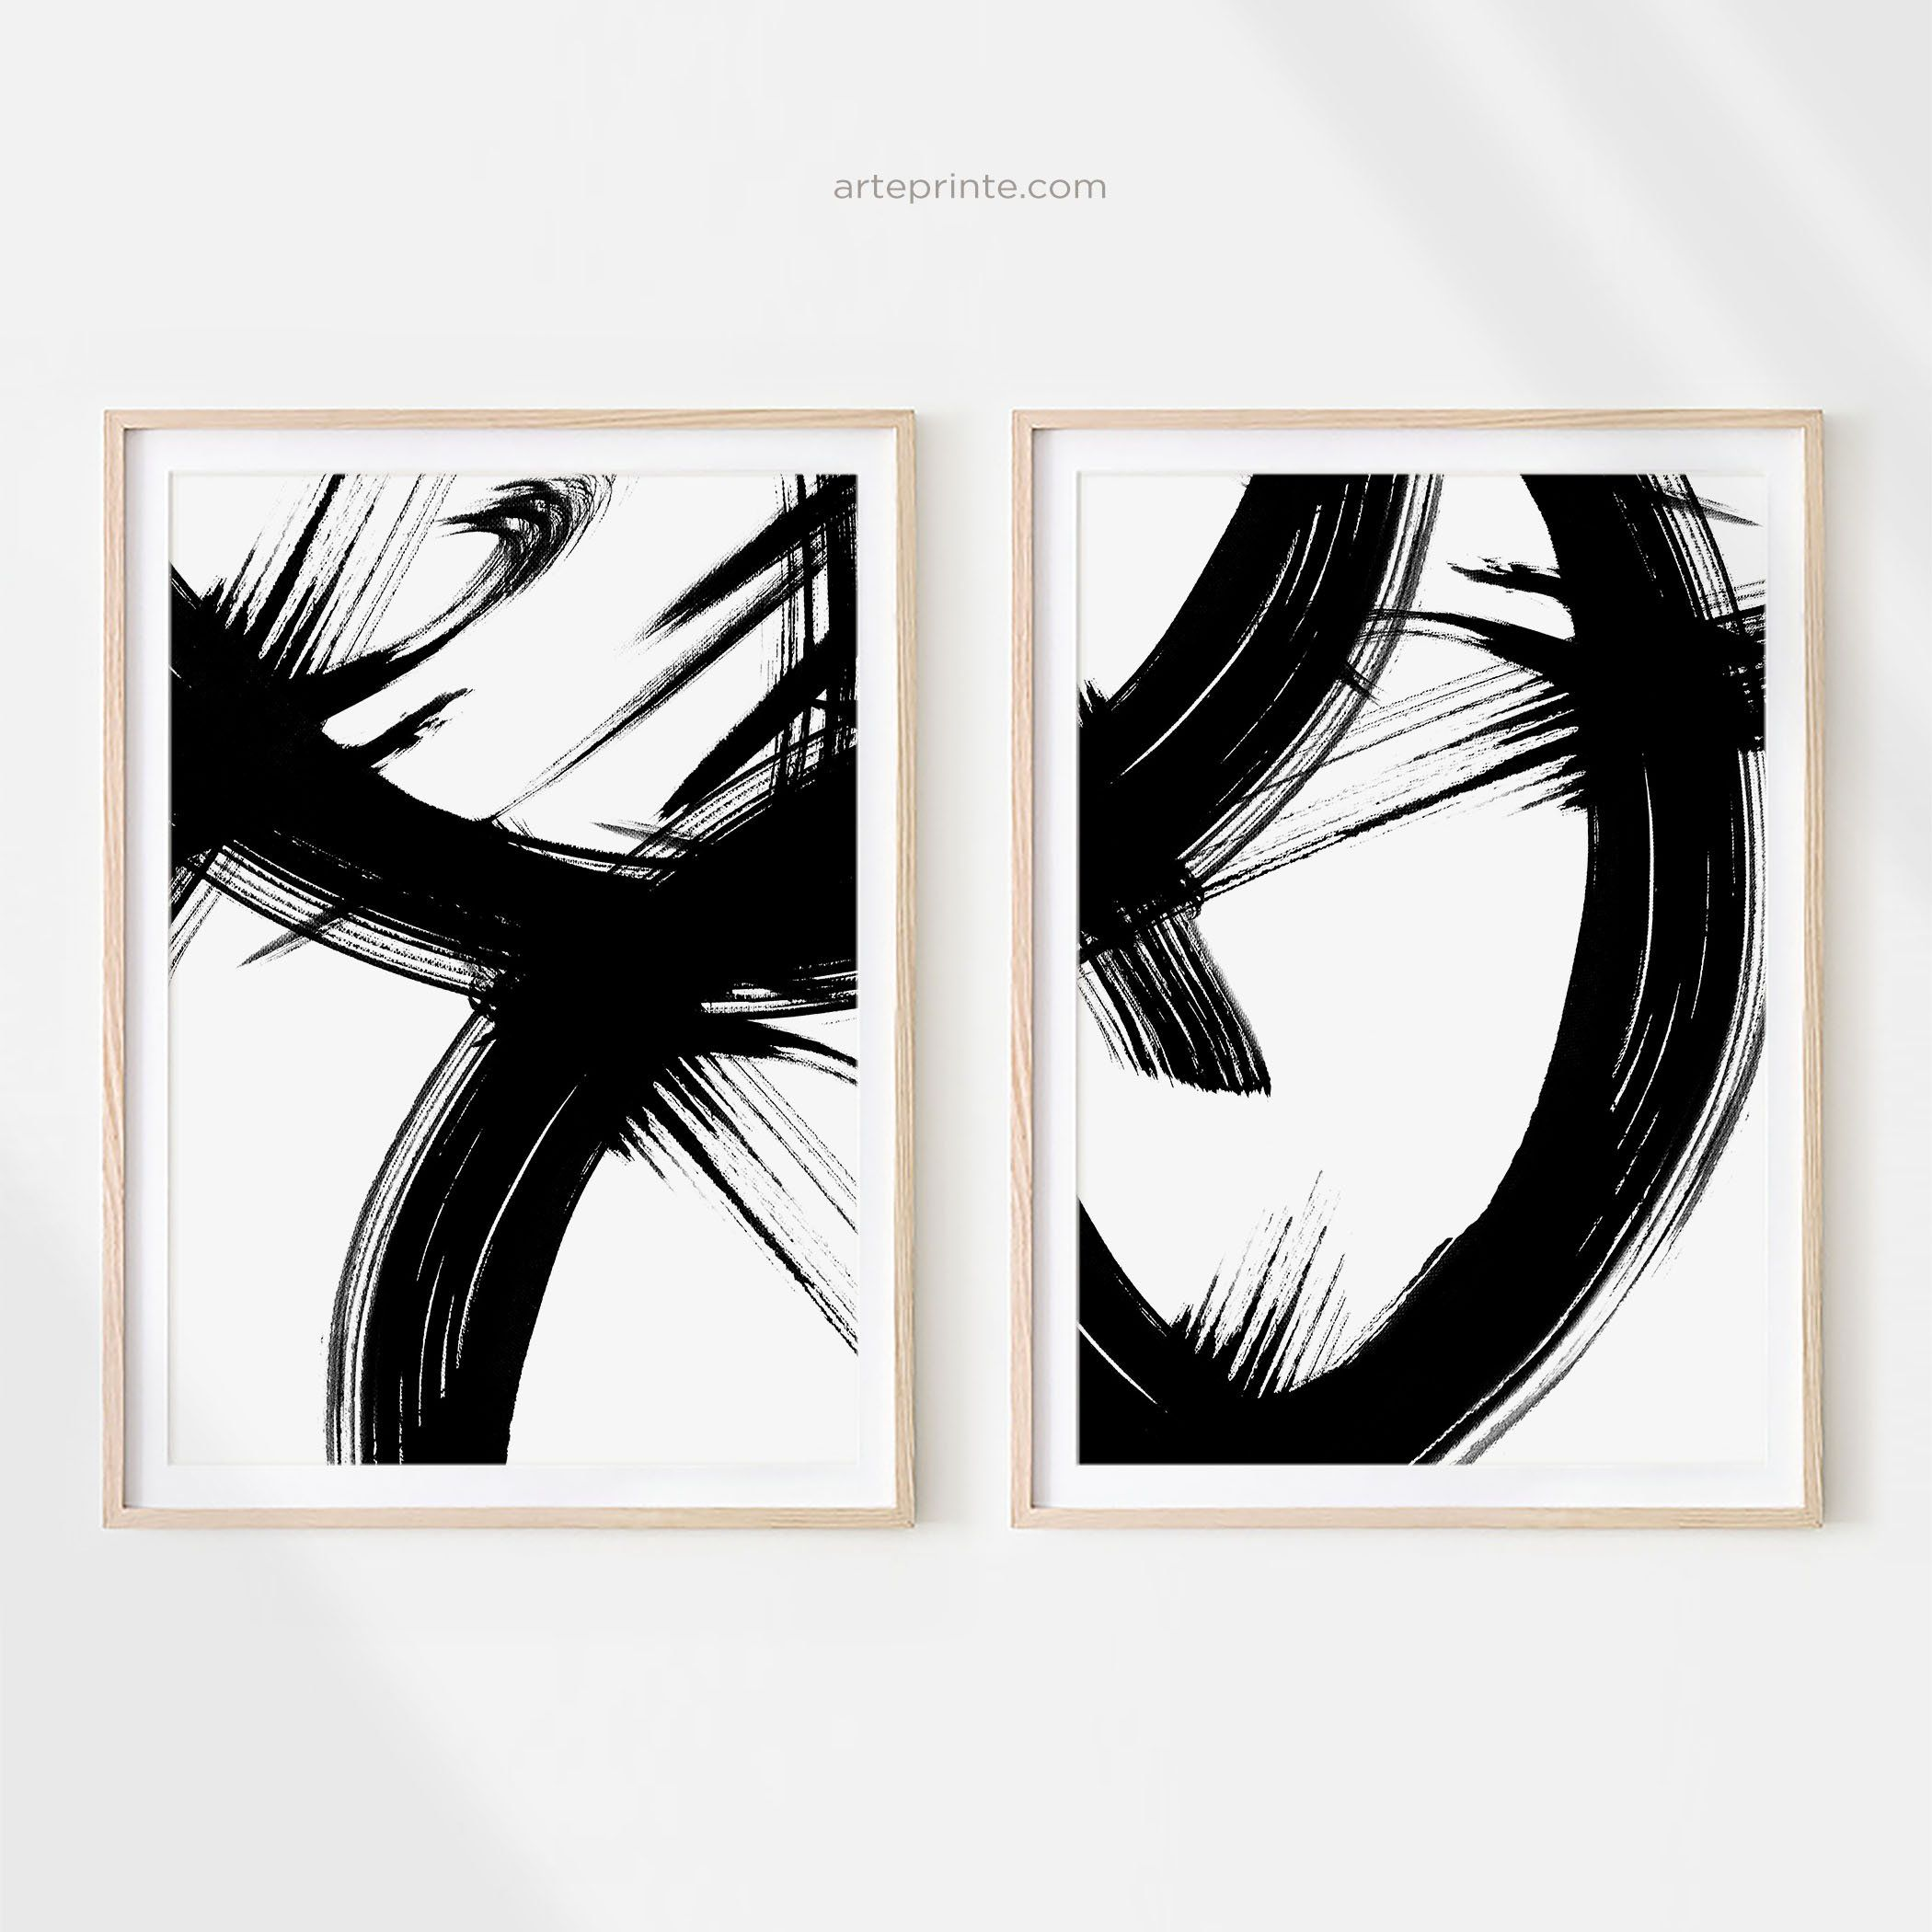 Black and White Minimalist Abstract Ink Painting Set of 2 Prints Printable Abstract Painting Brush Strokes Art Modern Wall Art Download